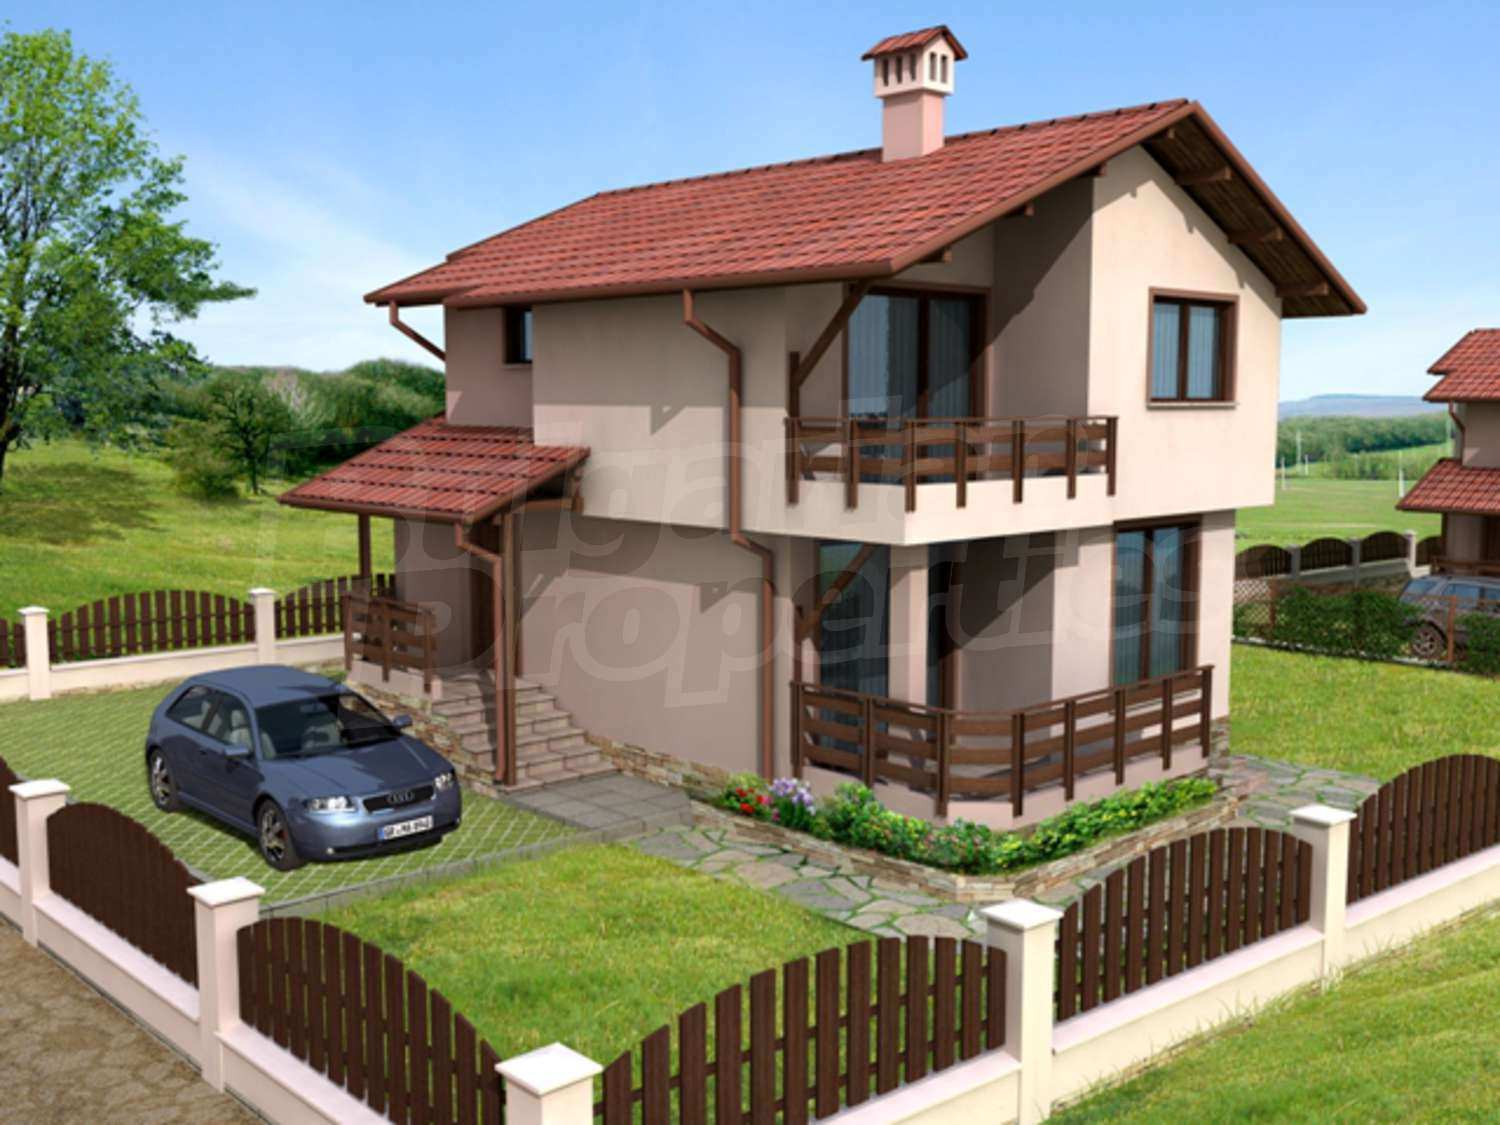 House for sale near byala varna byala bulgaria two for Nice house images